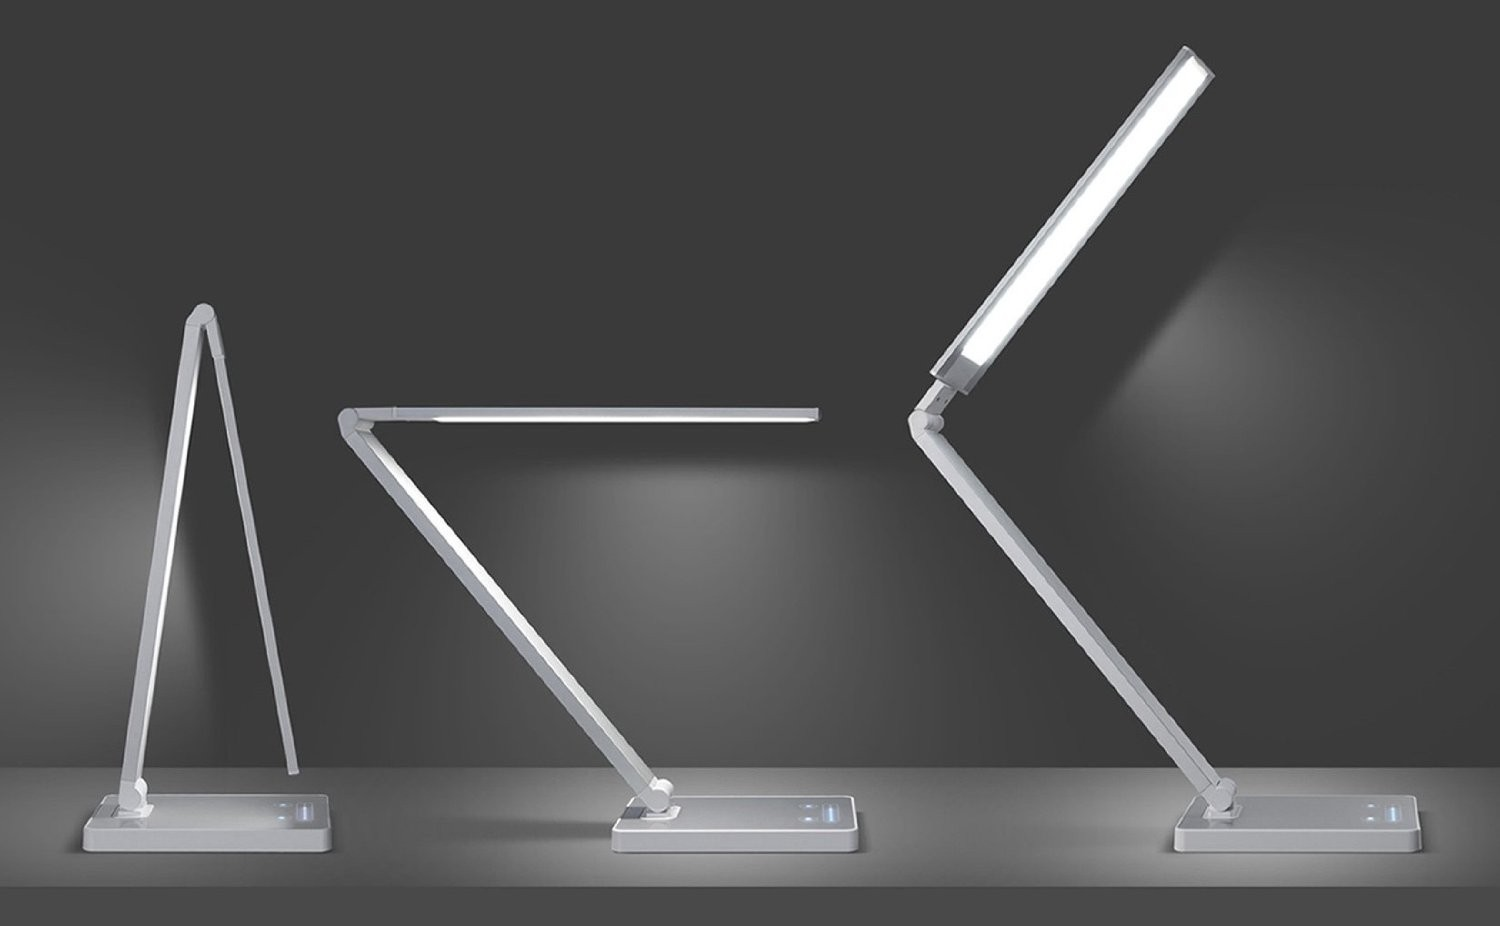 bauhau-concise-concept-led-desk-lamp-3